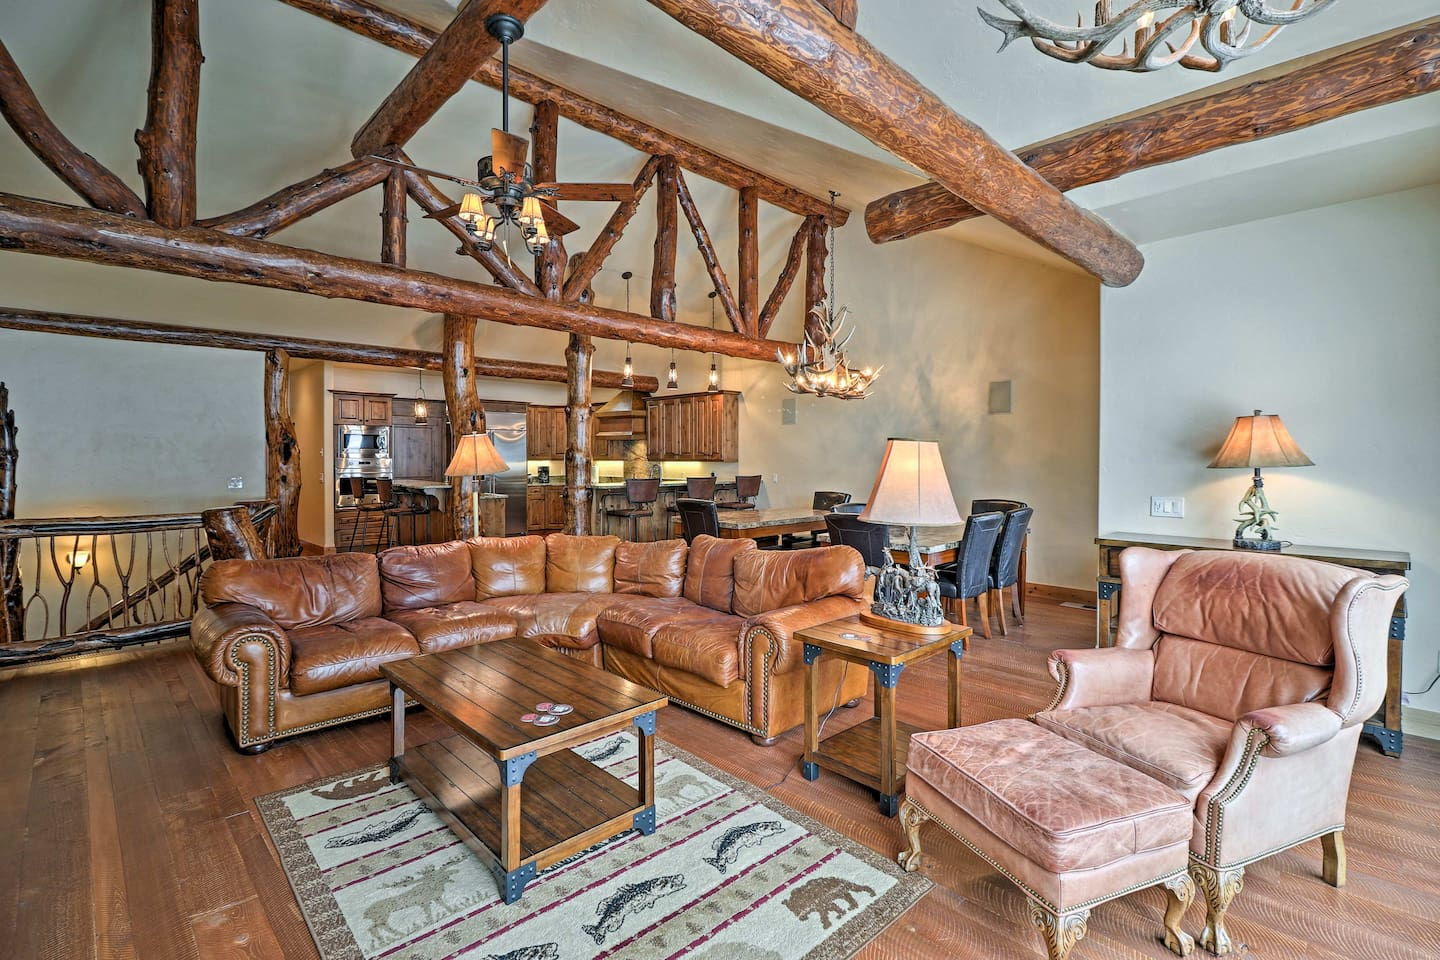 Explore the scenic Glacier Country from this custom-built home in Whitefish.